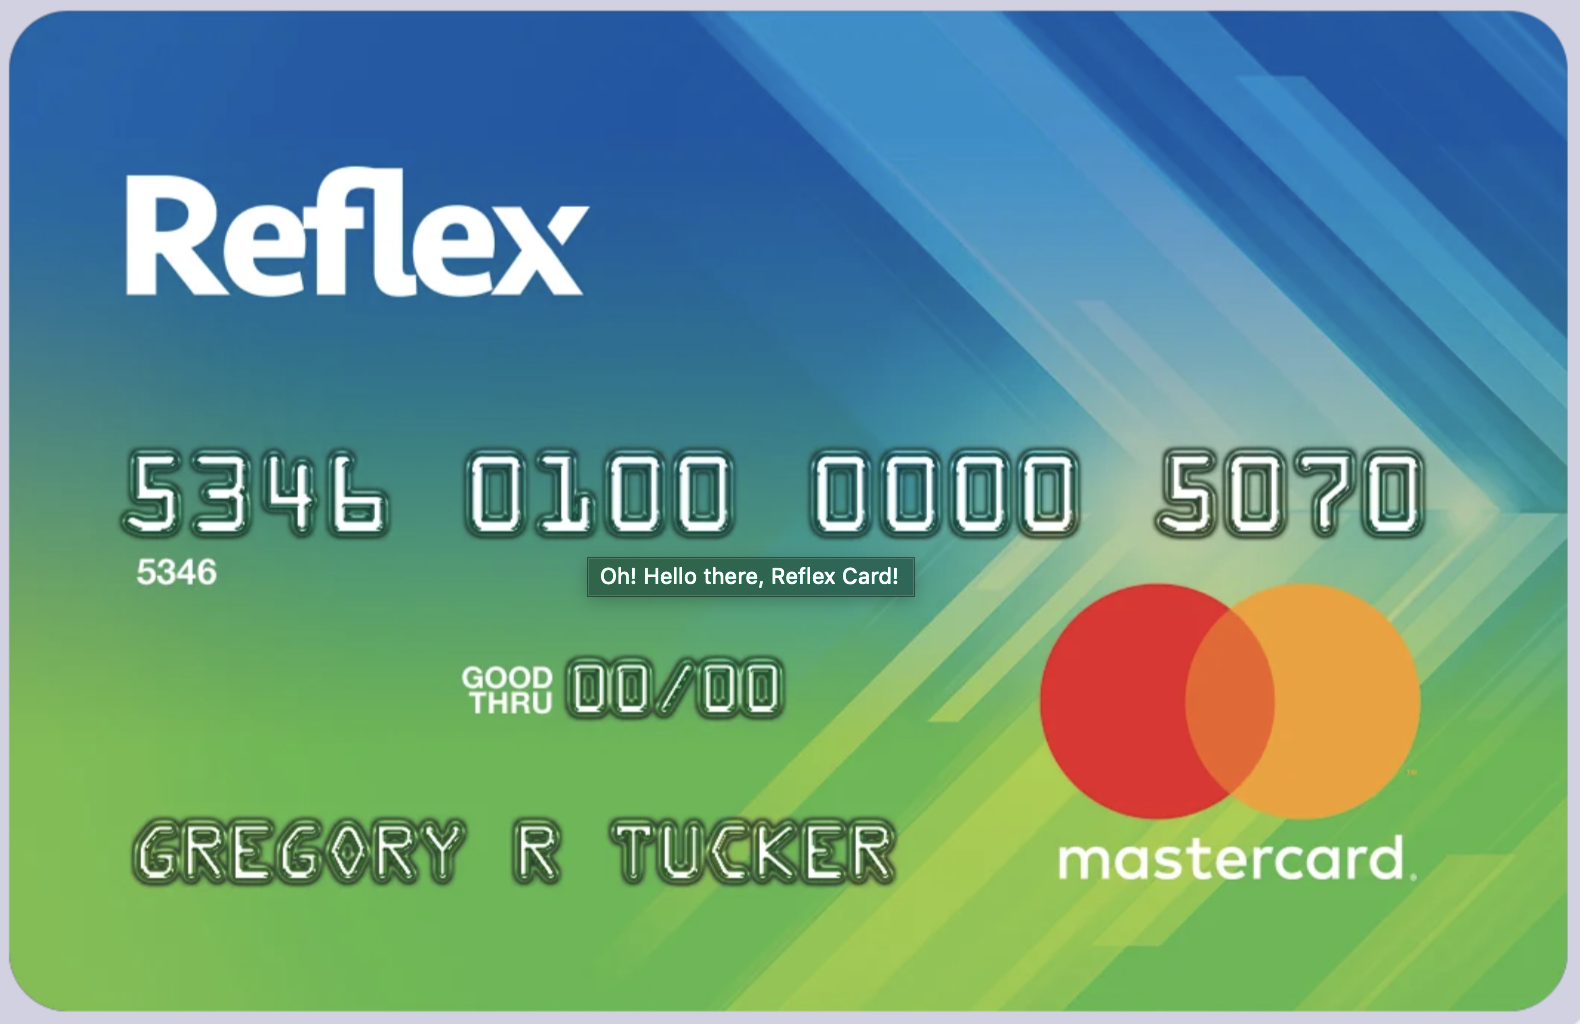 Reflex Card Through Continental Finance/ Celtic Bank